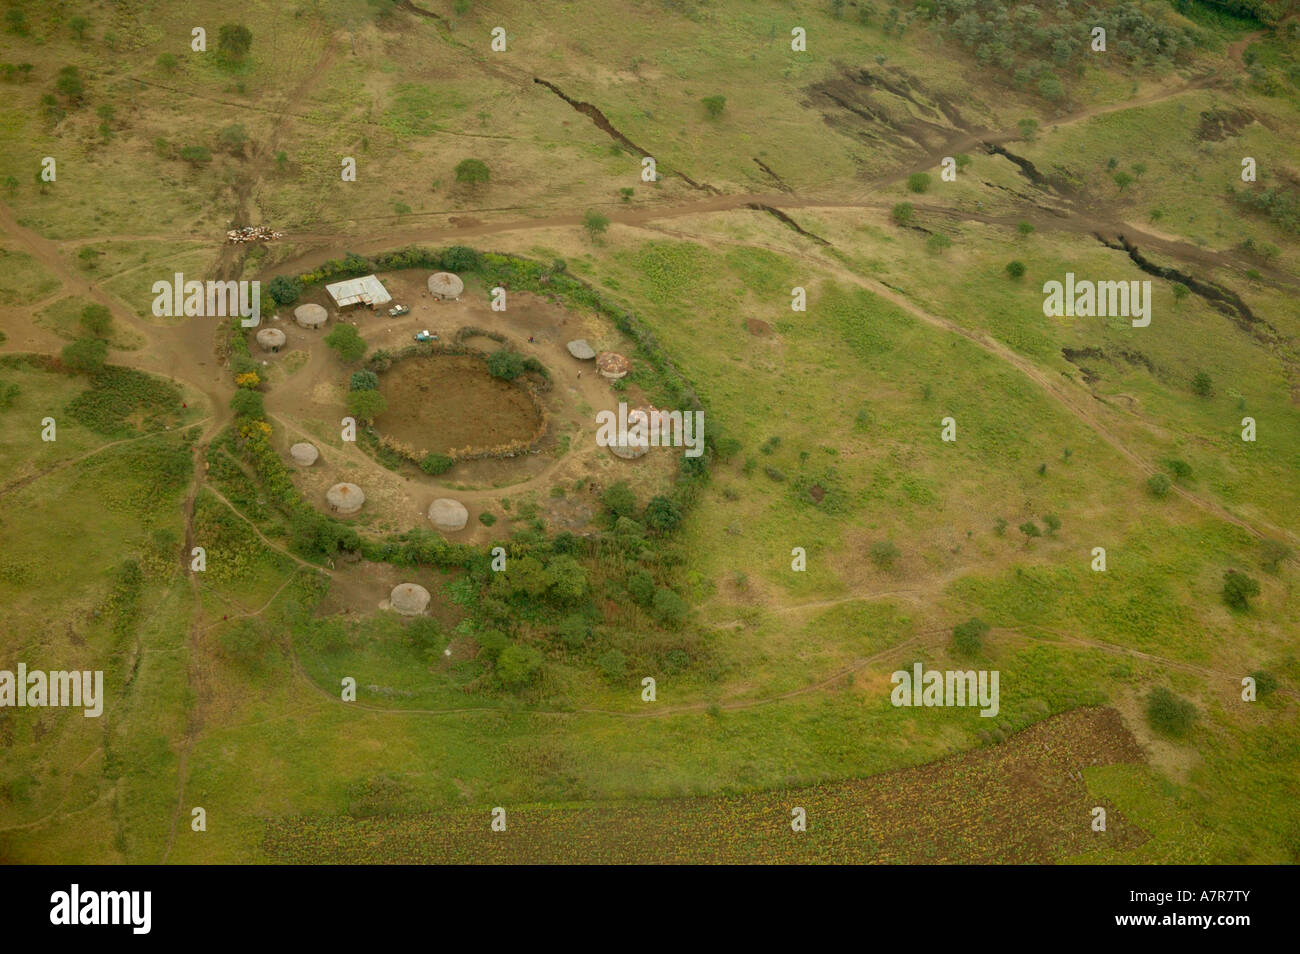 An aerial view of a traditional Masaai homestead with a number of huts around the periphery of a central cattle - Stock Image